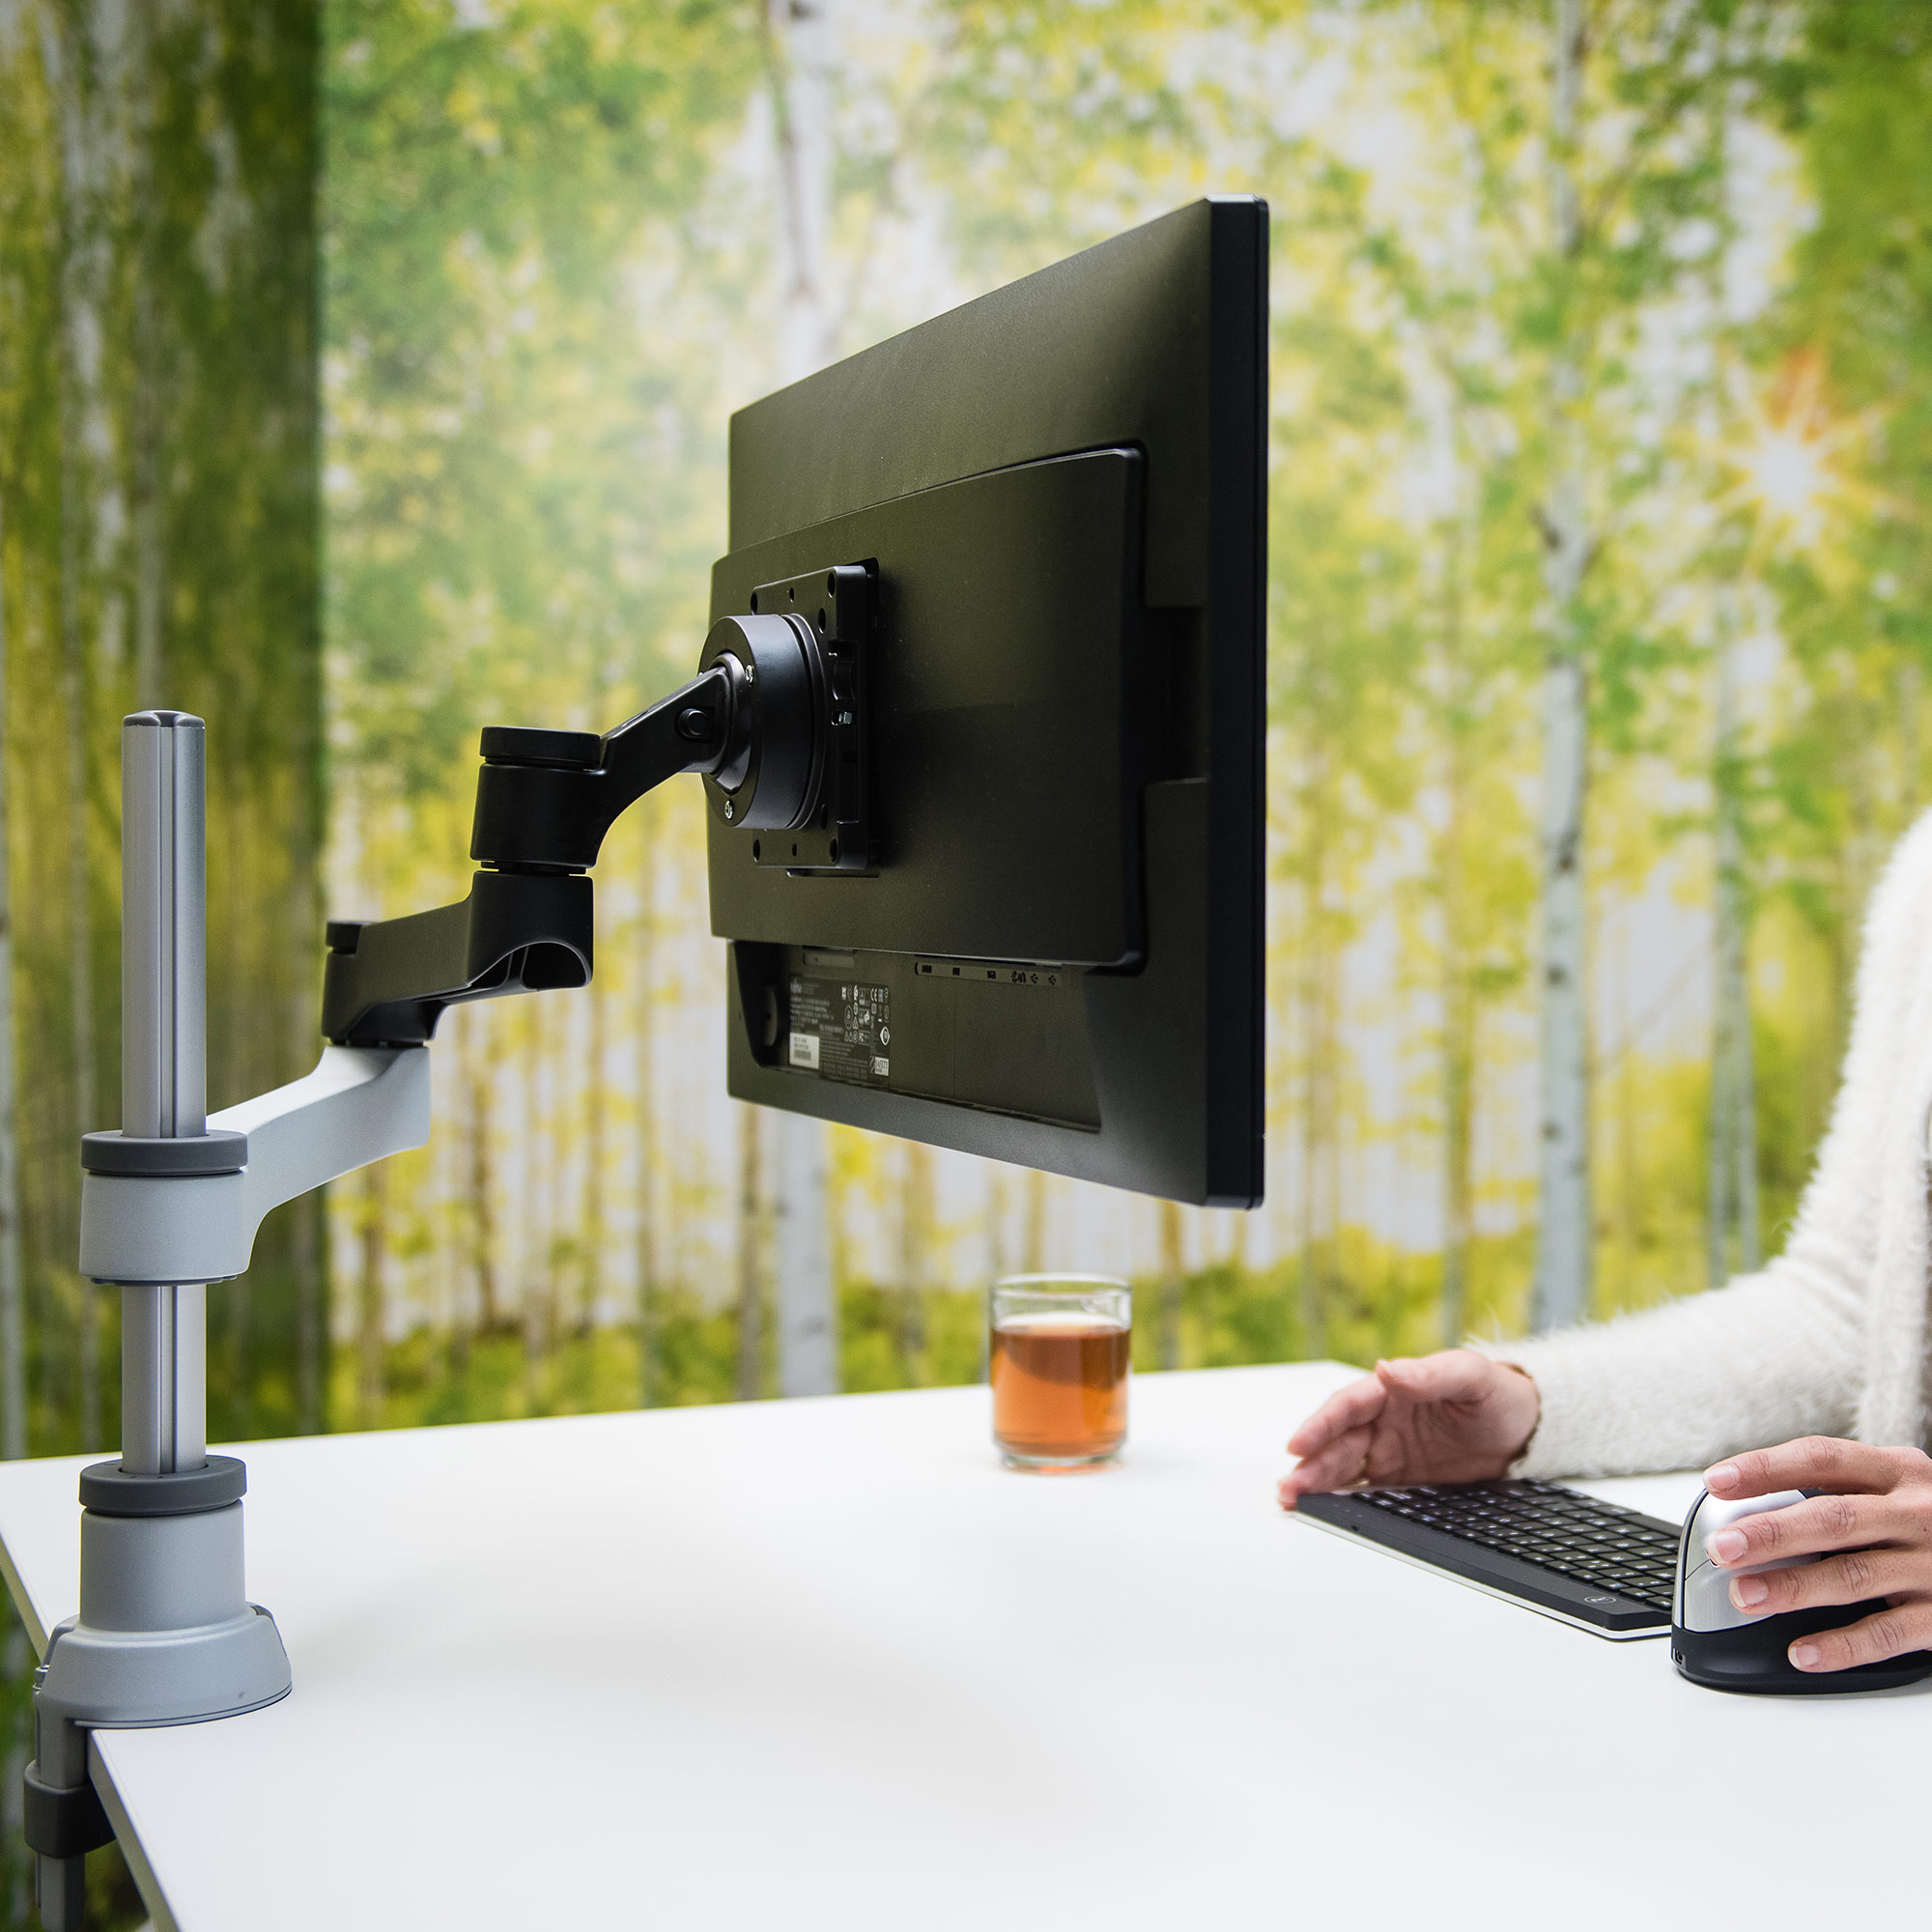 R-Go Zepher 4 C2, Circular Single Monitor Arm Desk Mount, Adjustable, 0-8 kg, Black-Silver, Low Carbon Footprint - 2